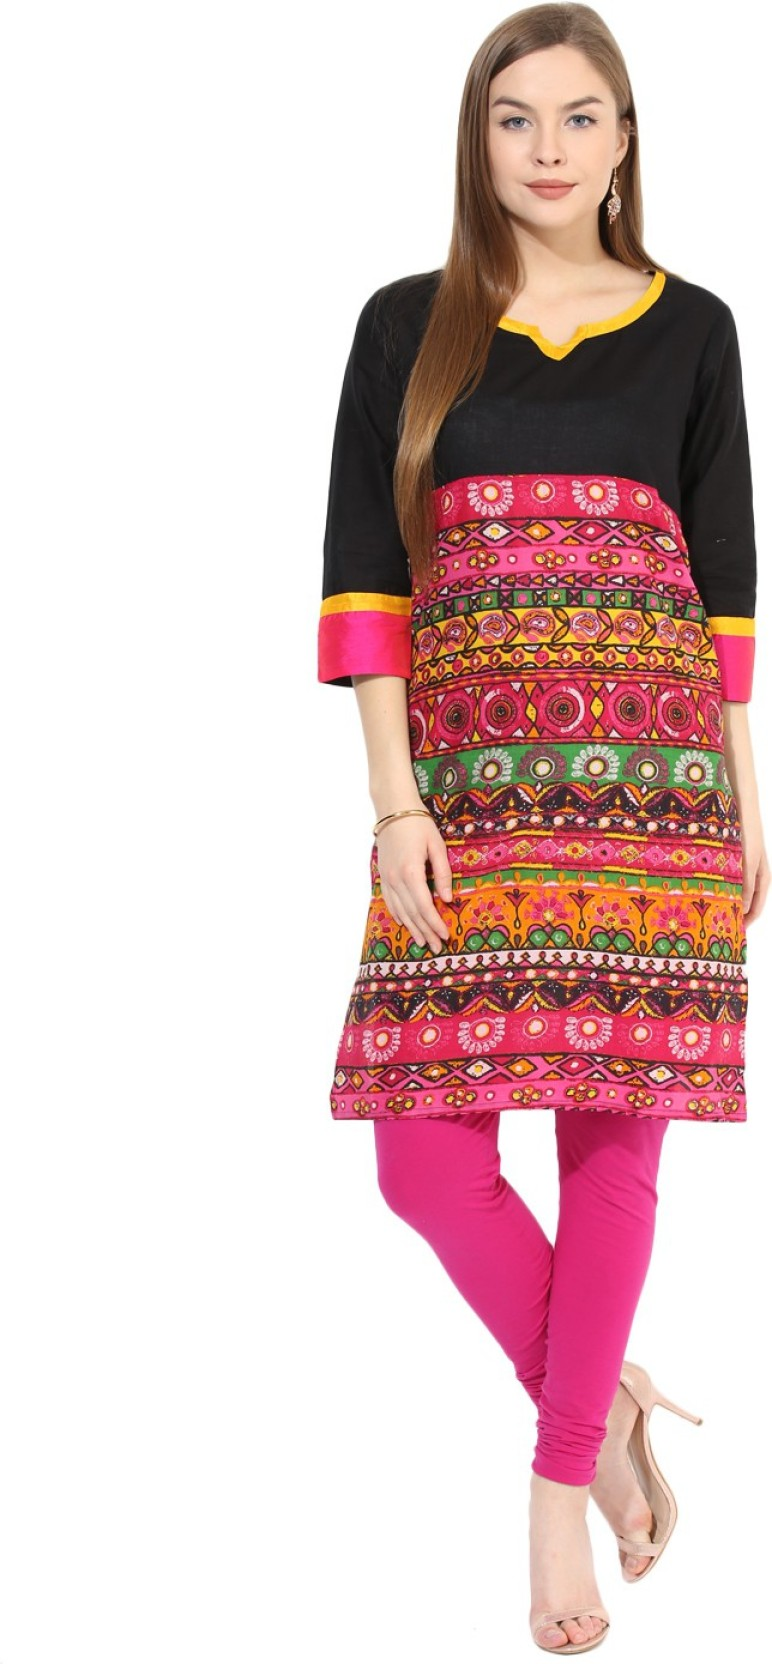 1299376c52c Aks Women s Printed Straight Kurta - Buy Black Aks Women s Printed ...